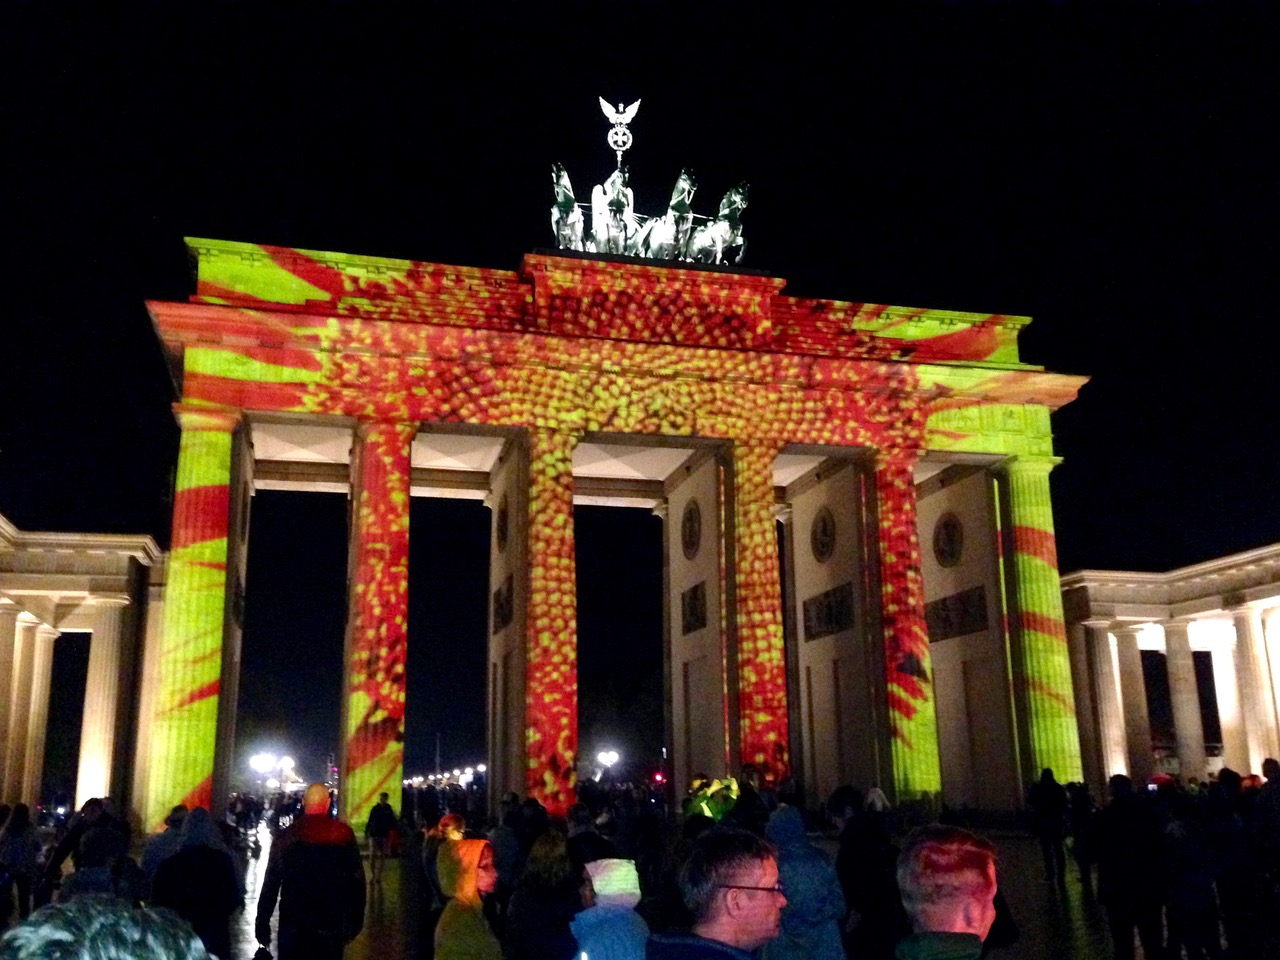 Spectacular light projections on Brandenburg Gate, Brandenburger Tor in Berlin, Germany